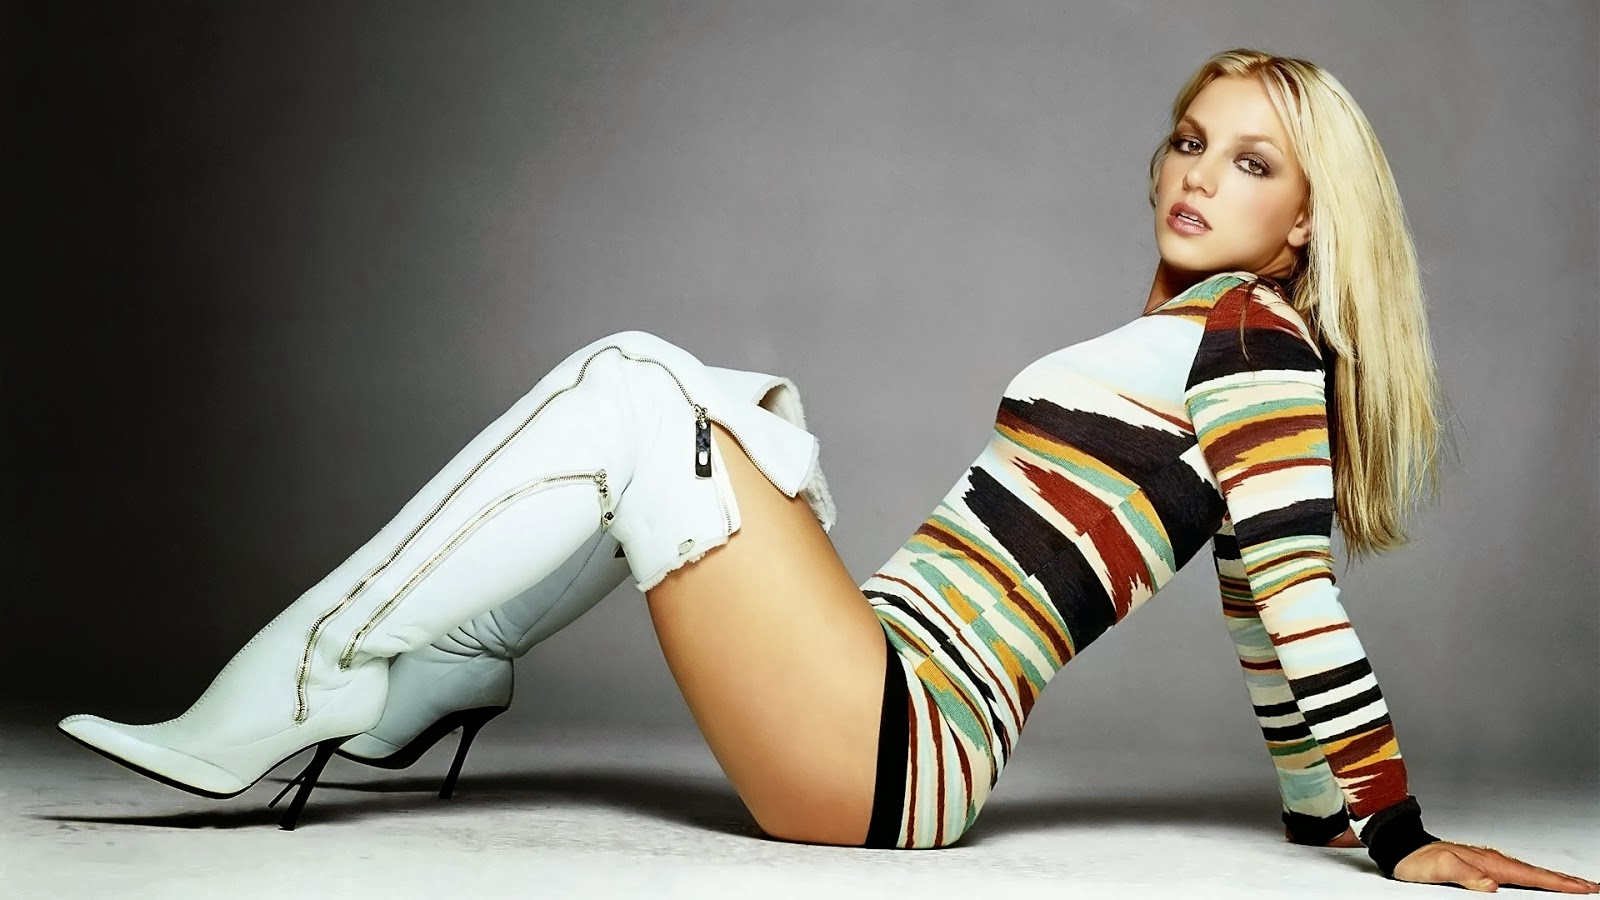 Britney+Spears+Hd+Wallpapers+Free+Download033